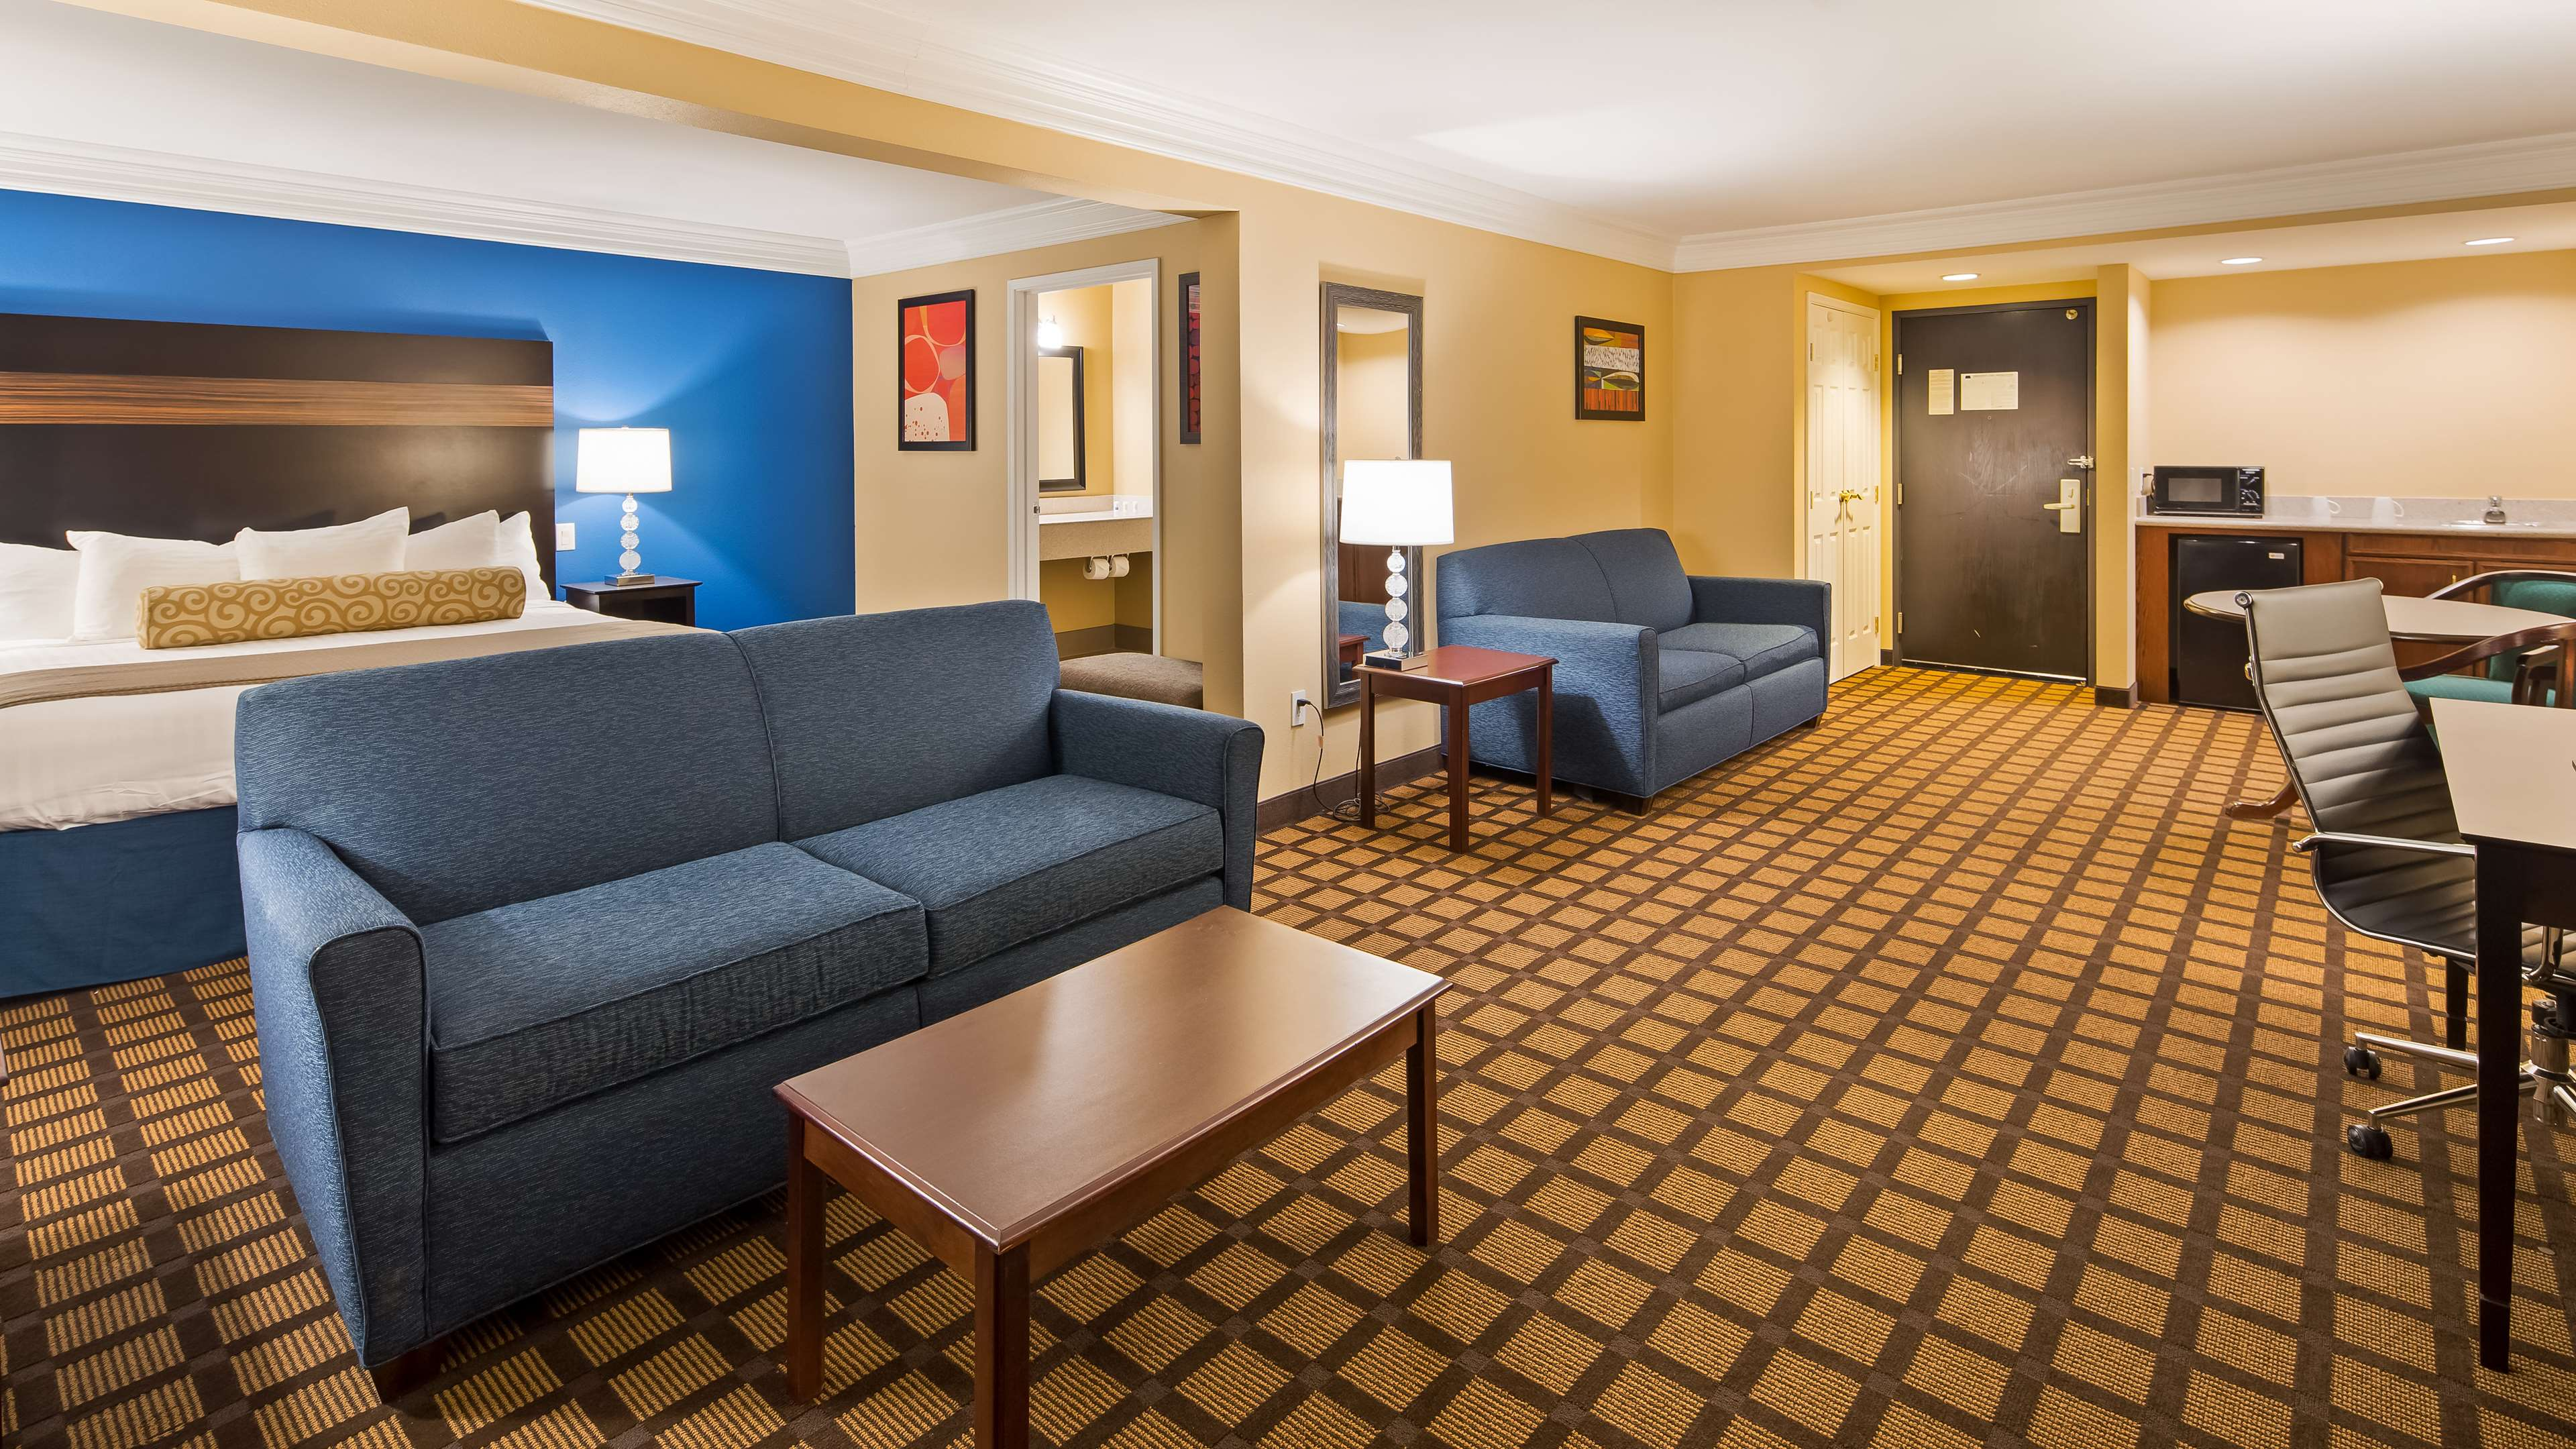 Best Western Regency Plaza Hotel - St. Paul East image 15